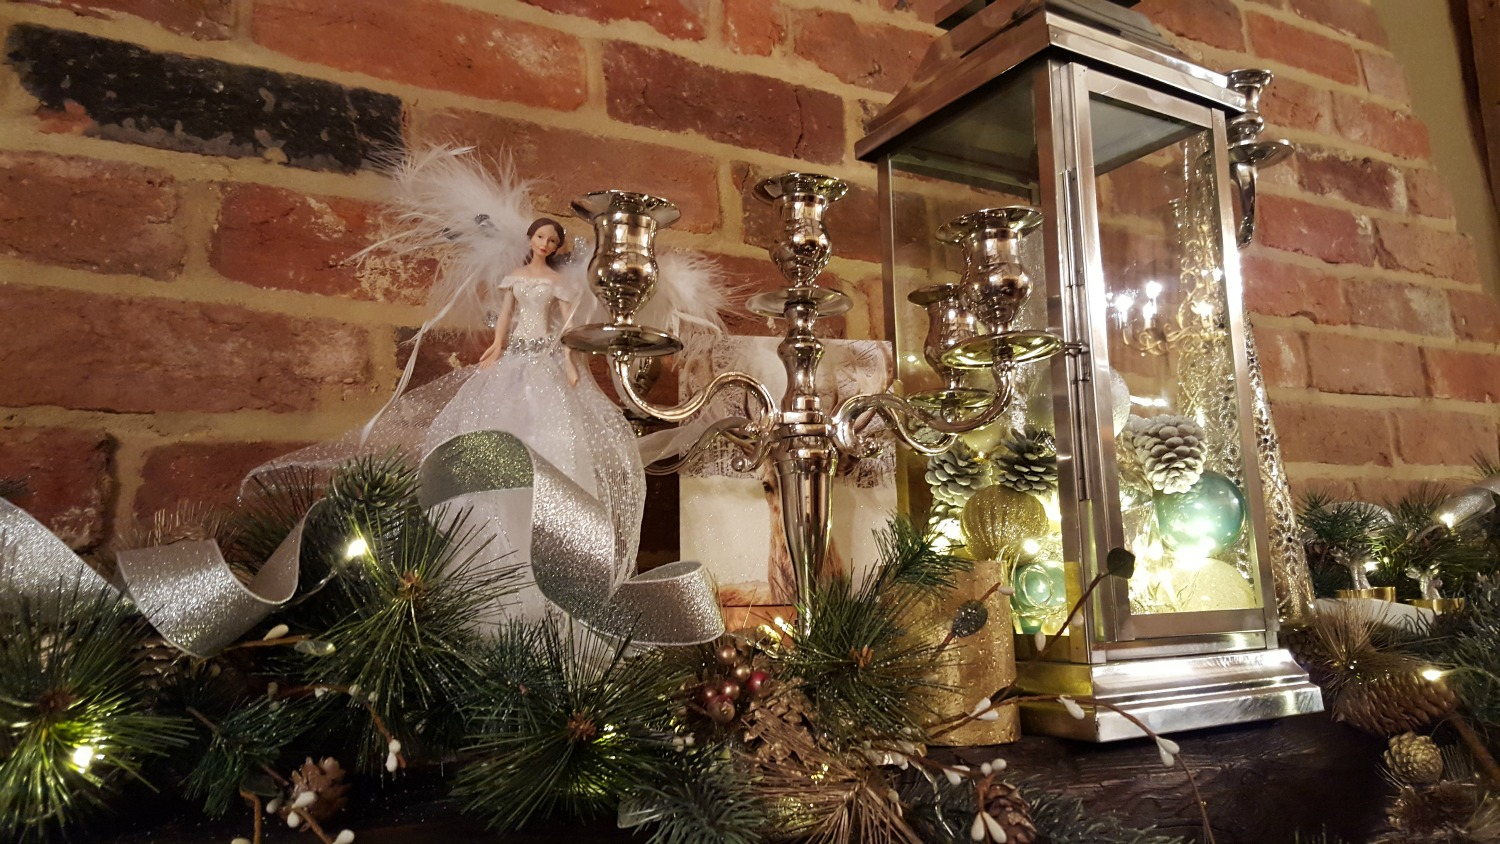 The stunning Christmas fireplace at TheEssexBarn.com